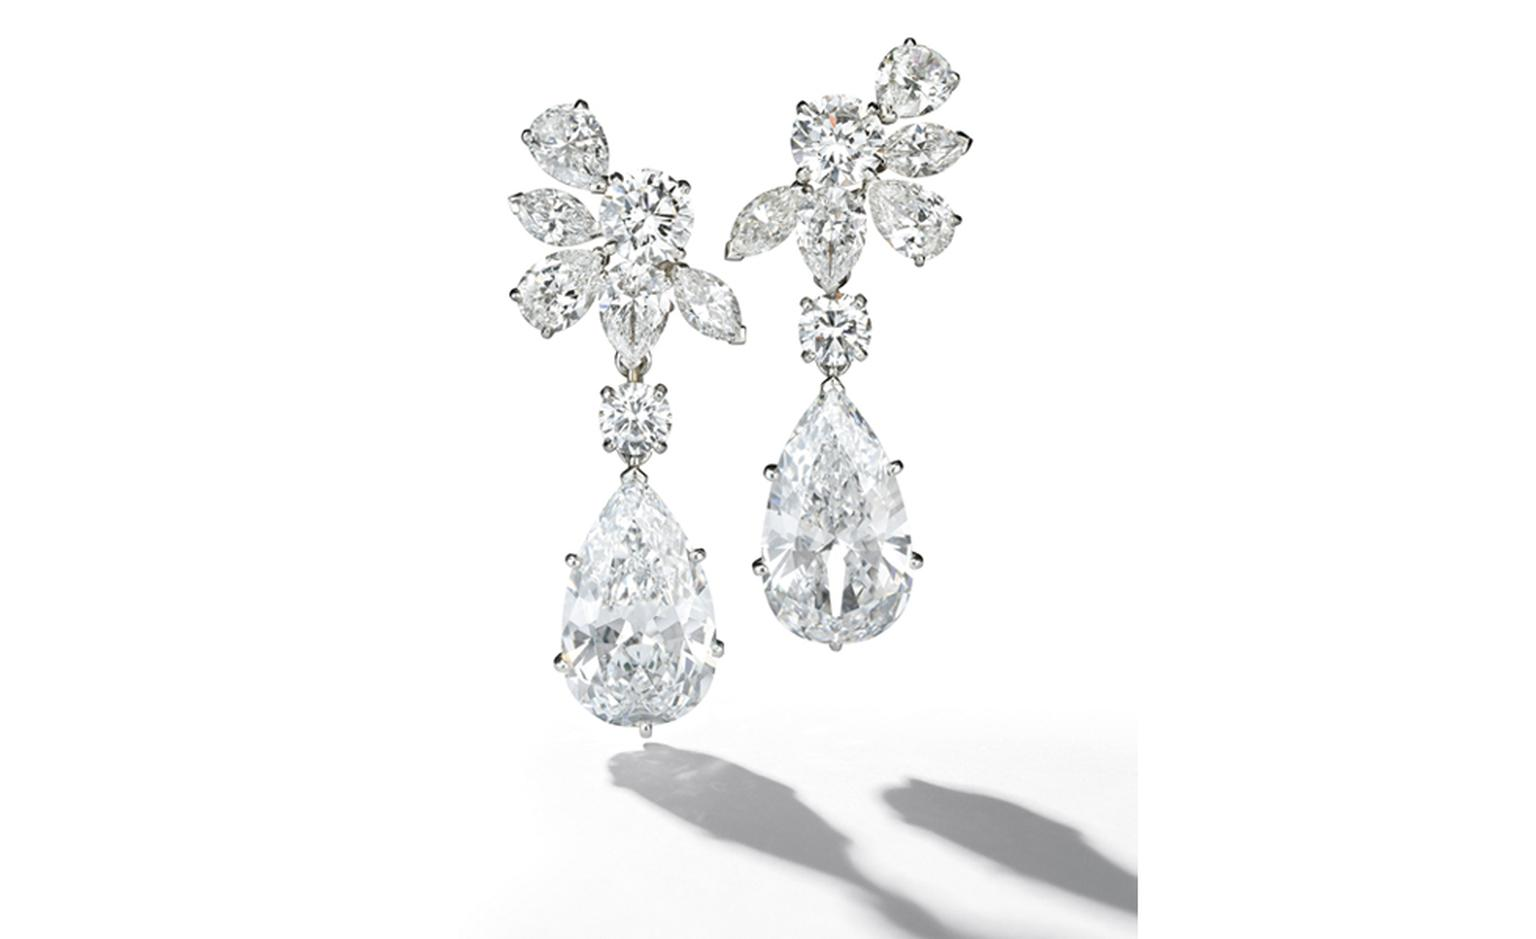 A pair of detachable 7.60 & 7.57cts pear-shaped Diamond & diamond ear pendants, by Van Cleef & Arpels. Estimate: SFr. 1,350,000-1,800,000 (US$ 1,500,000-2,000,000)